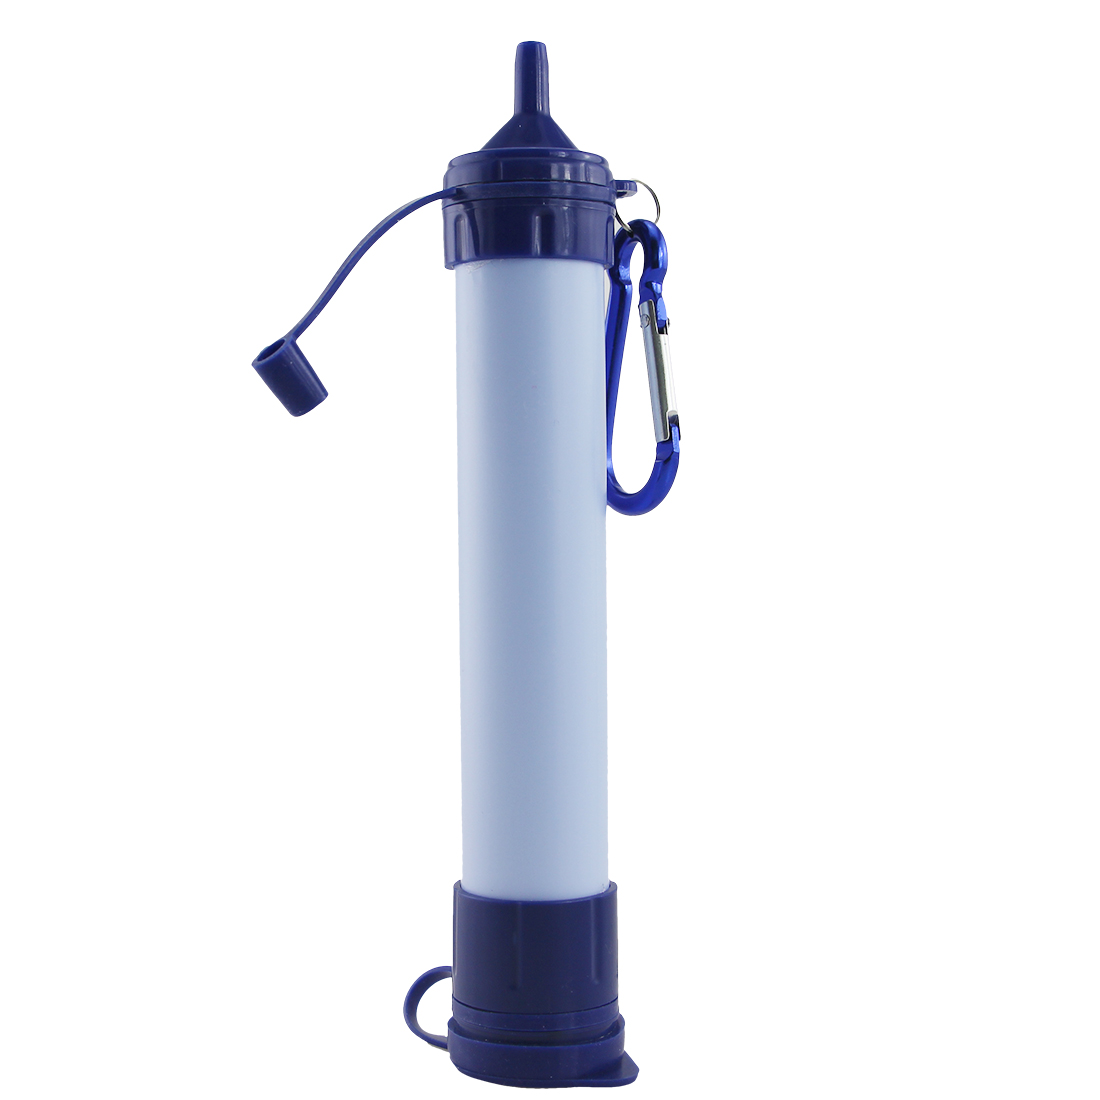 Camping Hiking Emergency Life Survival Portable Water Purifier Filter by